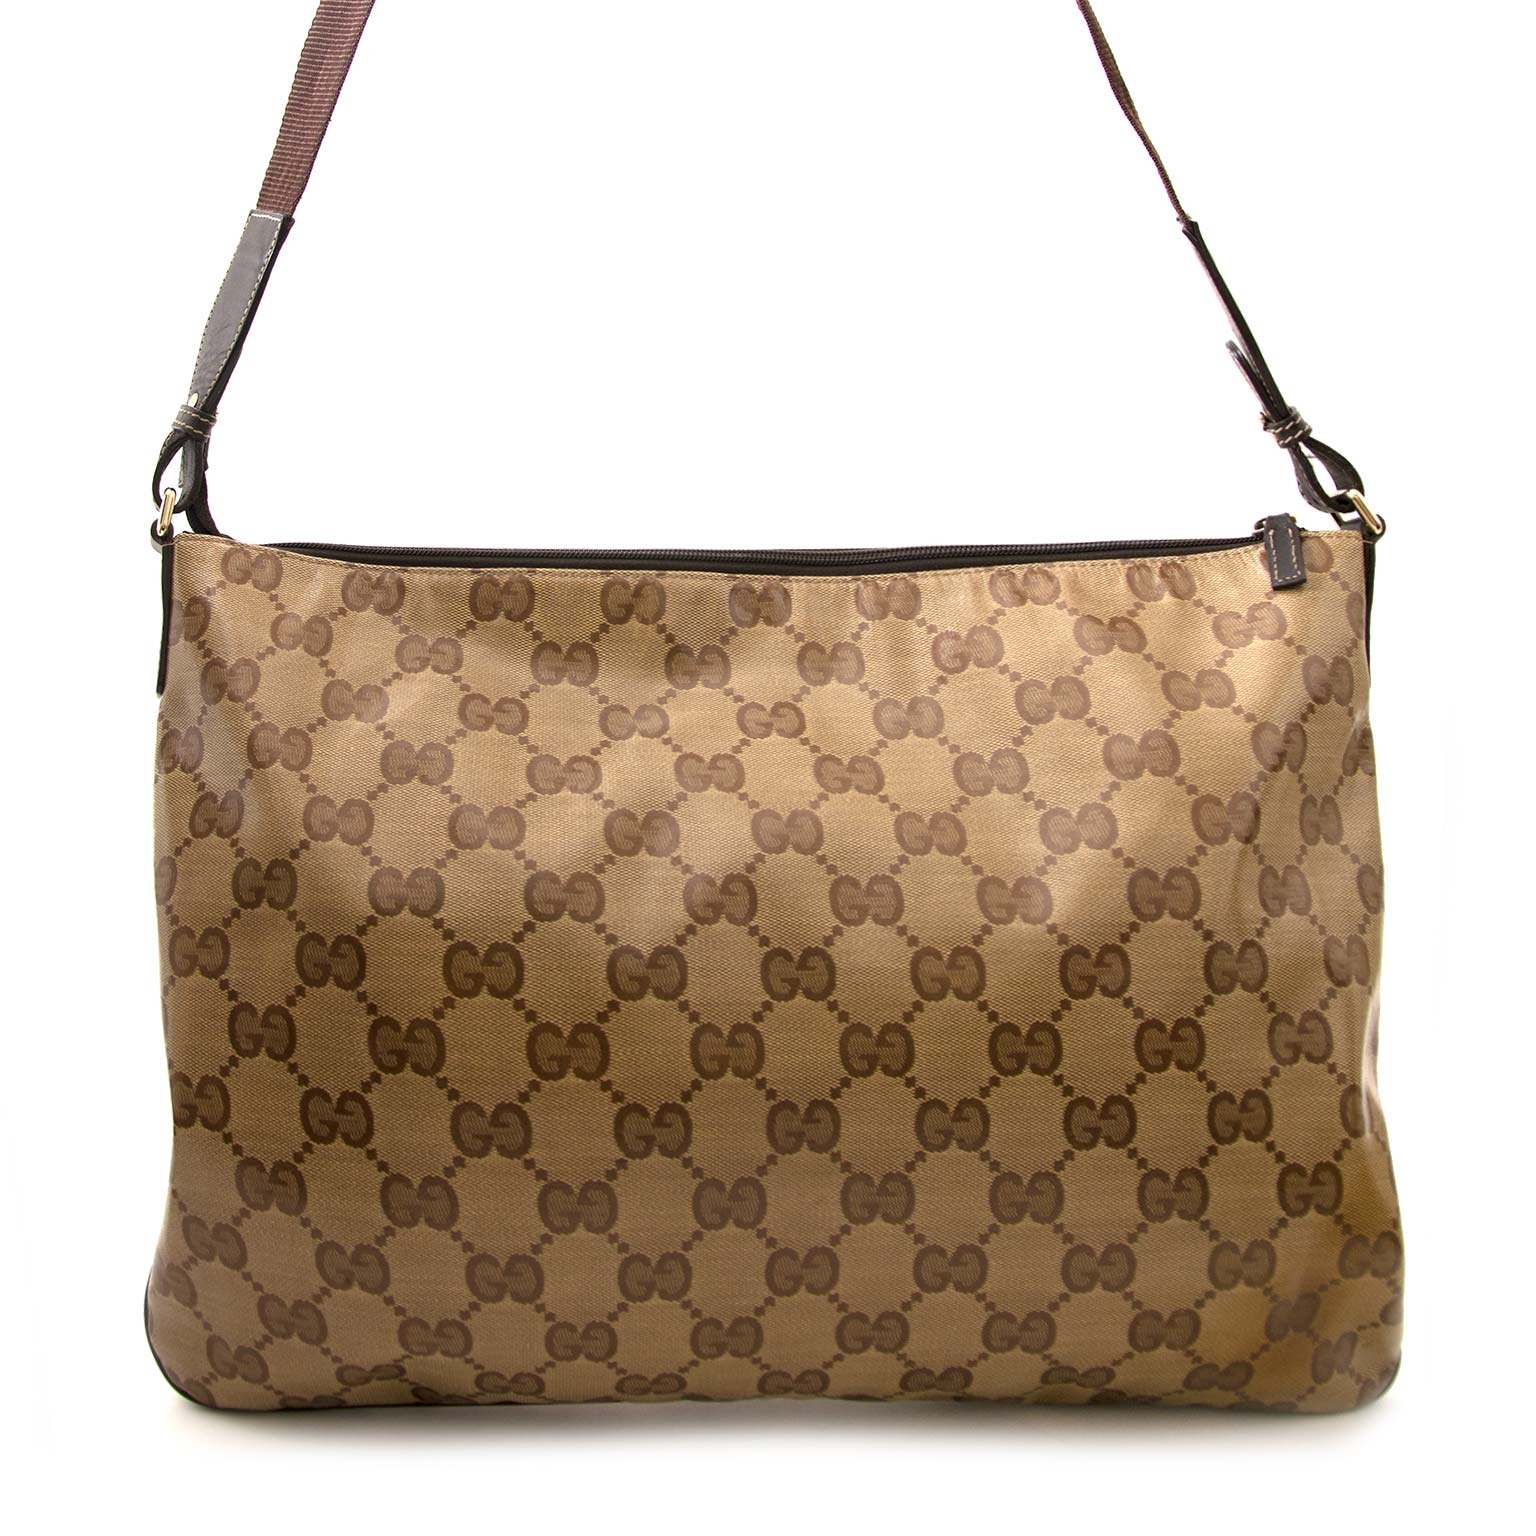 secondmain Gucci Coated Monogram Canvas Bag en vendre sur labellov